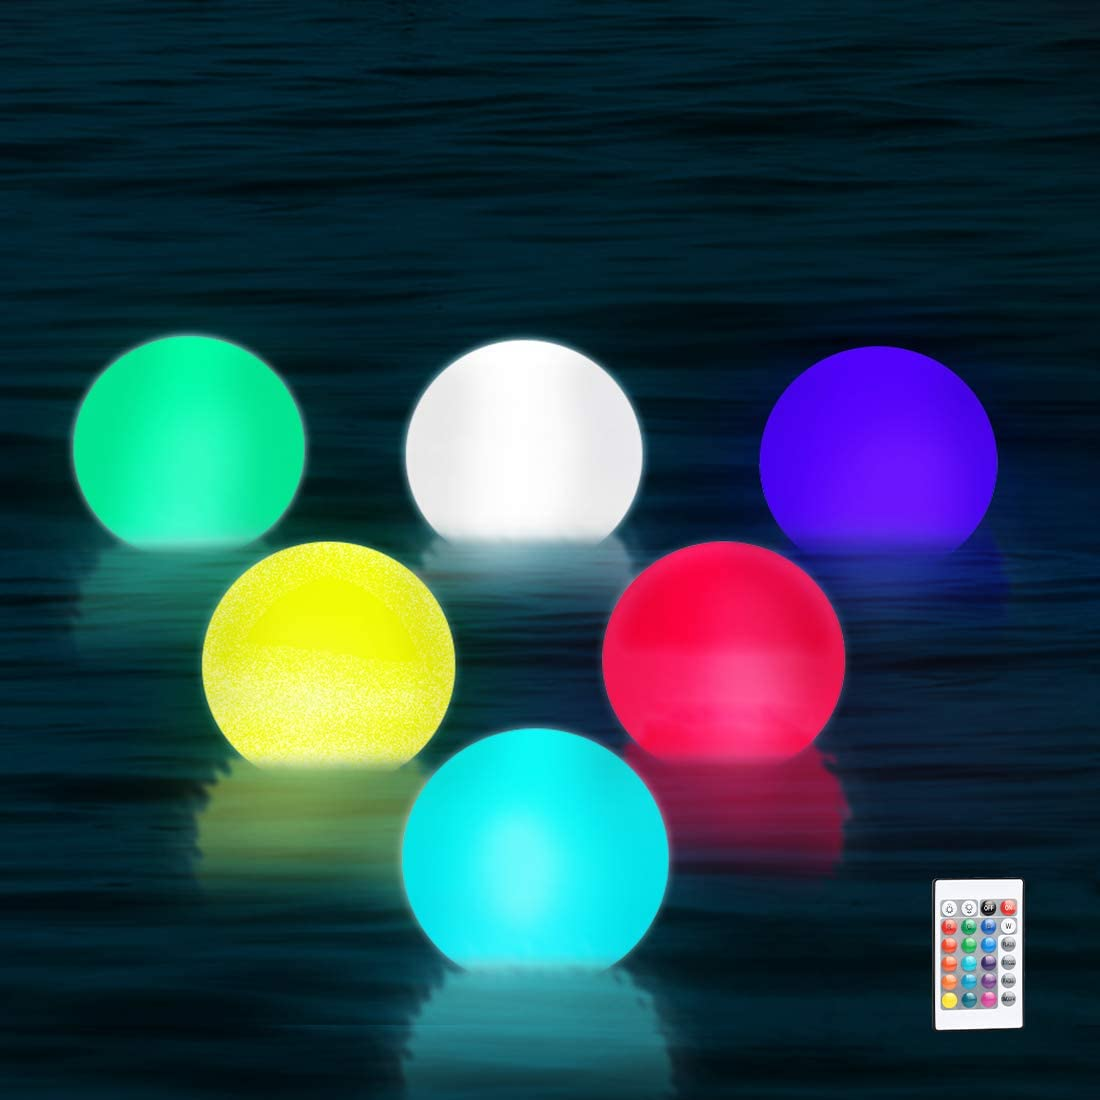 WHATOOK Floating Pool Lights: 6Pack 16 Color Changing Remote Led Ball Light IP68 Waterproof Bath Toys,Replaceable Battery Hot Tub Glow Night Lights for Swimming Pool,Garden,Wedding Decor